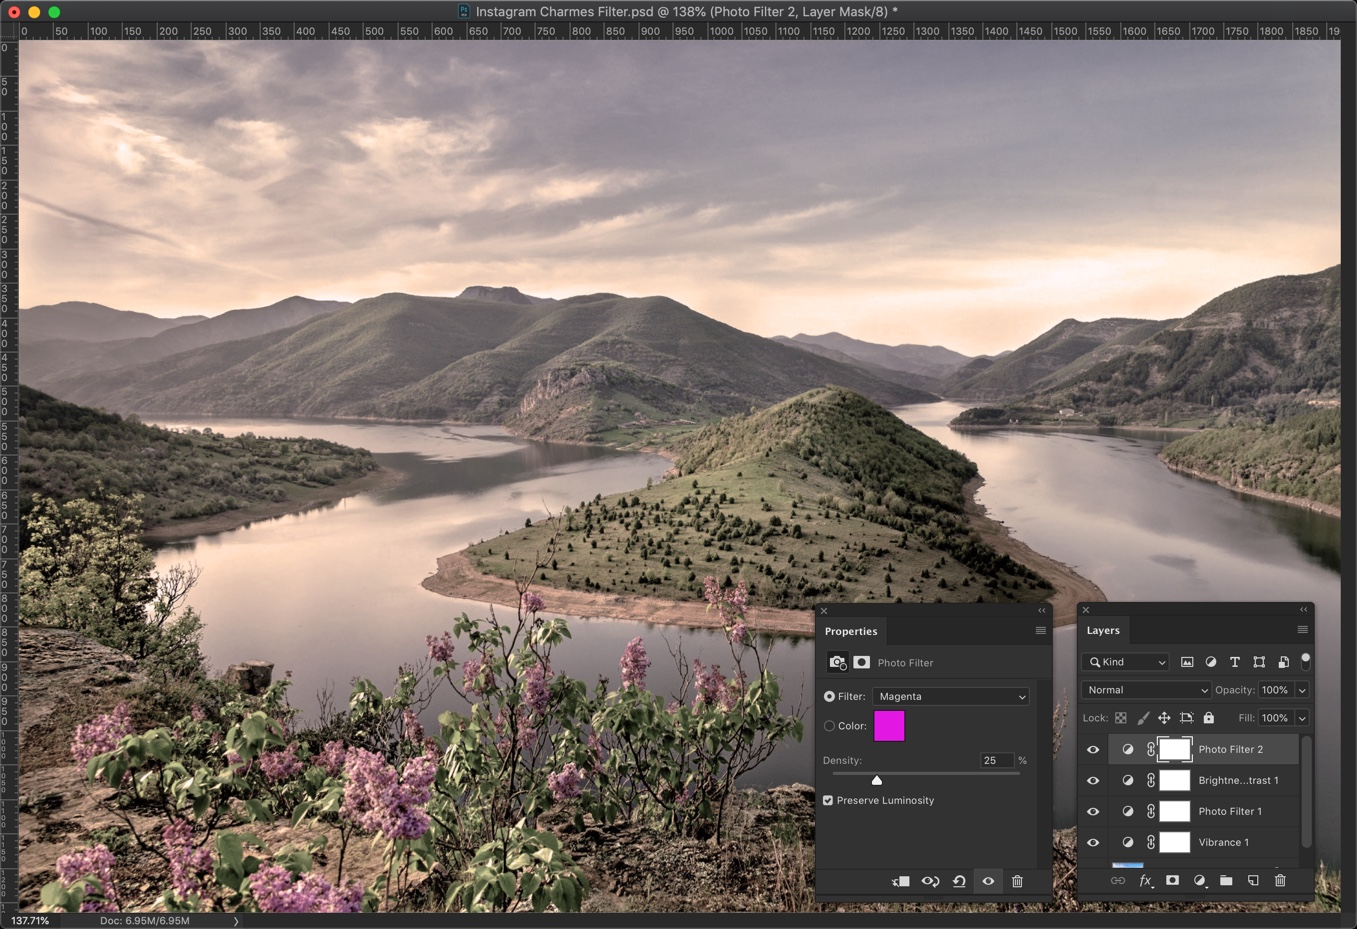 7-1 - Create Instagram Charmes Filter in Photoshop [Action Included]